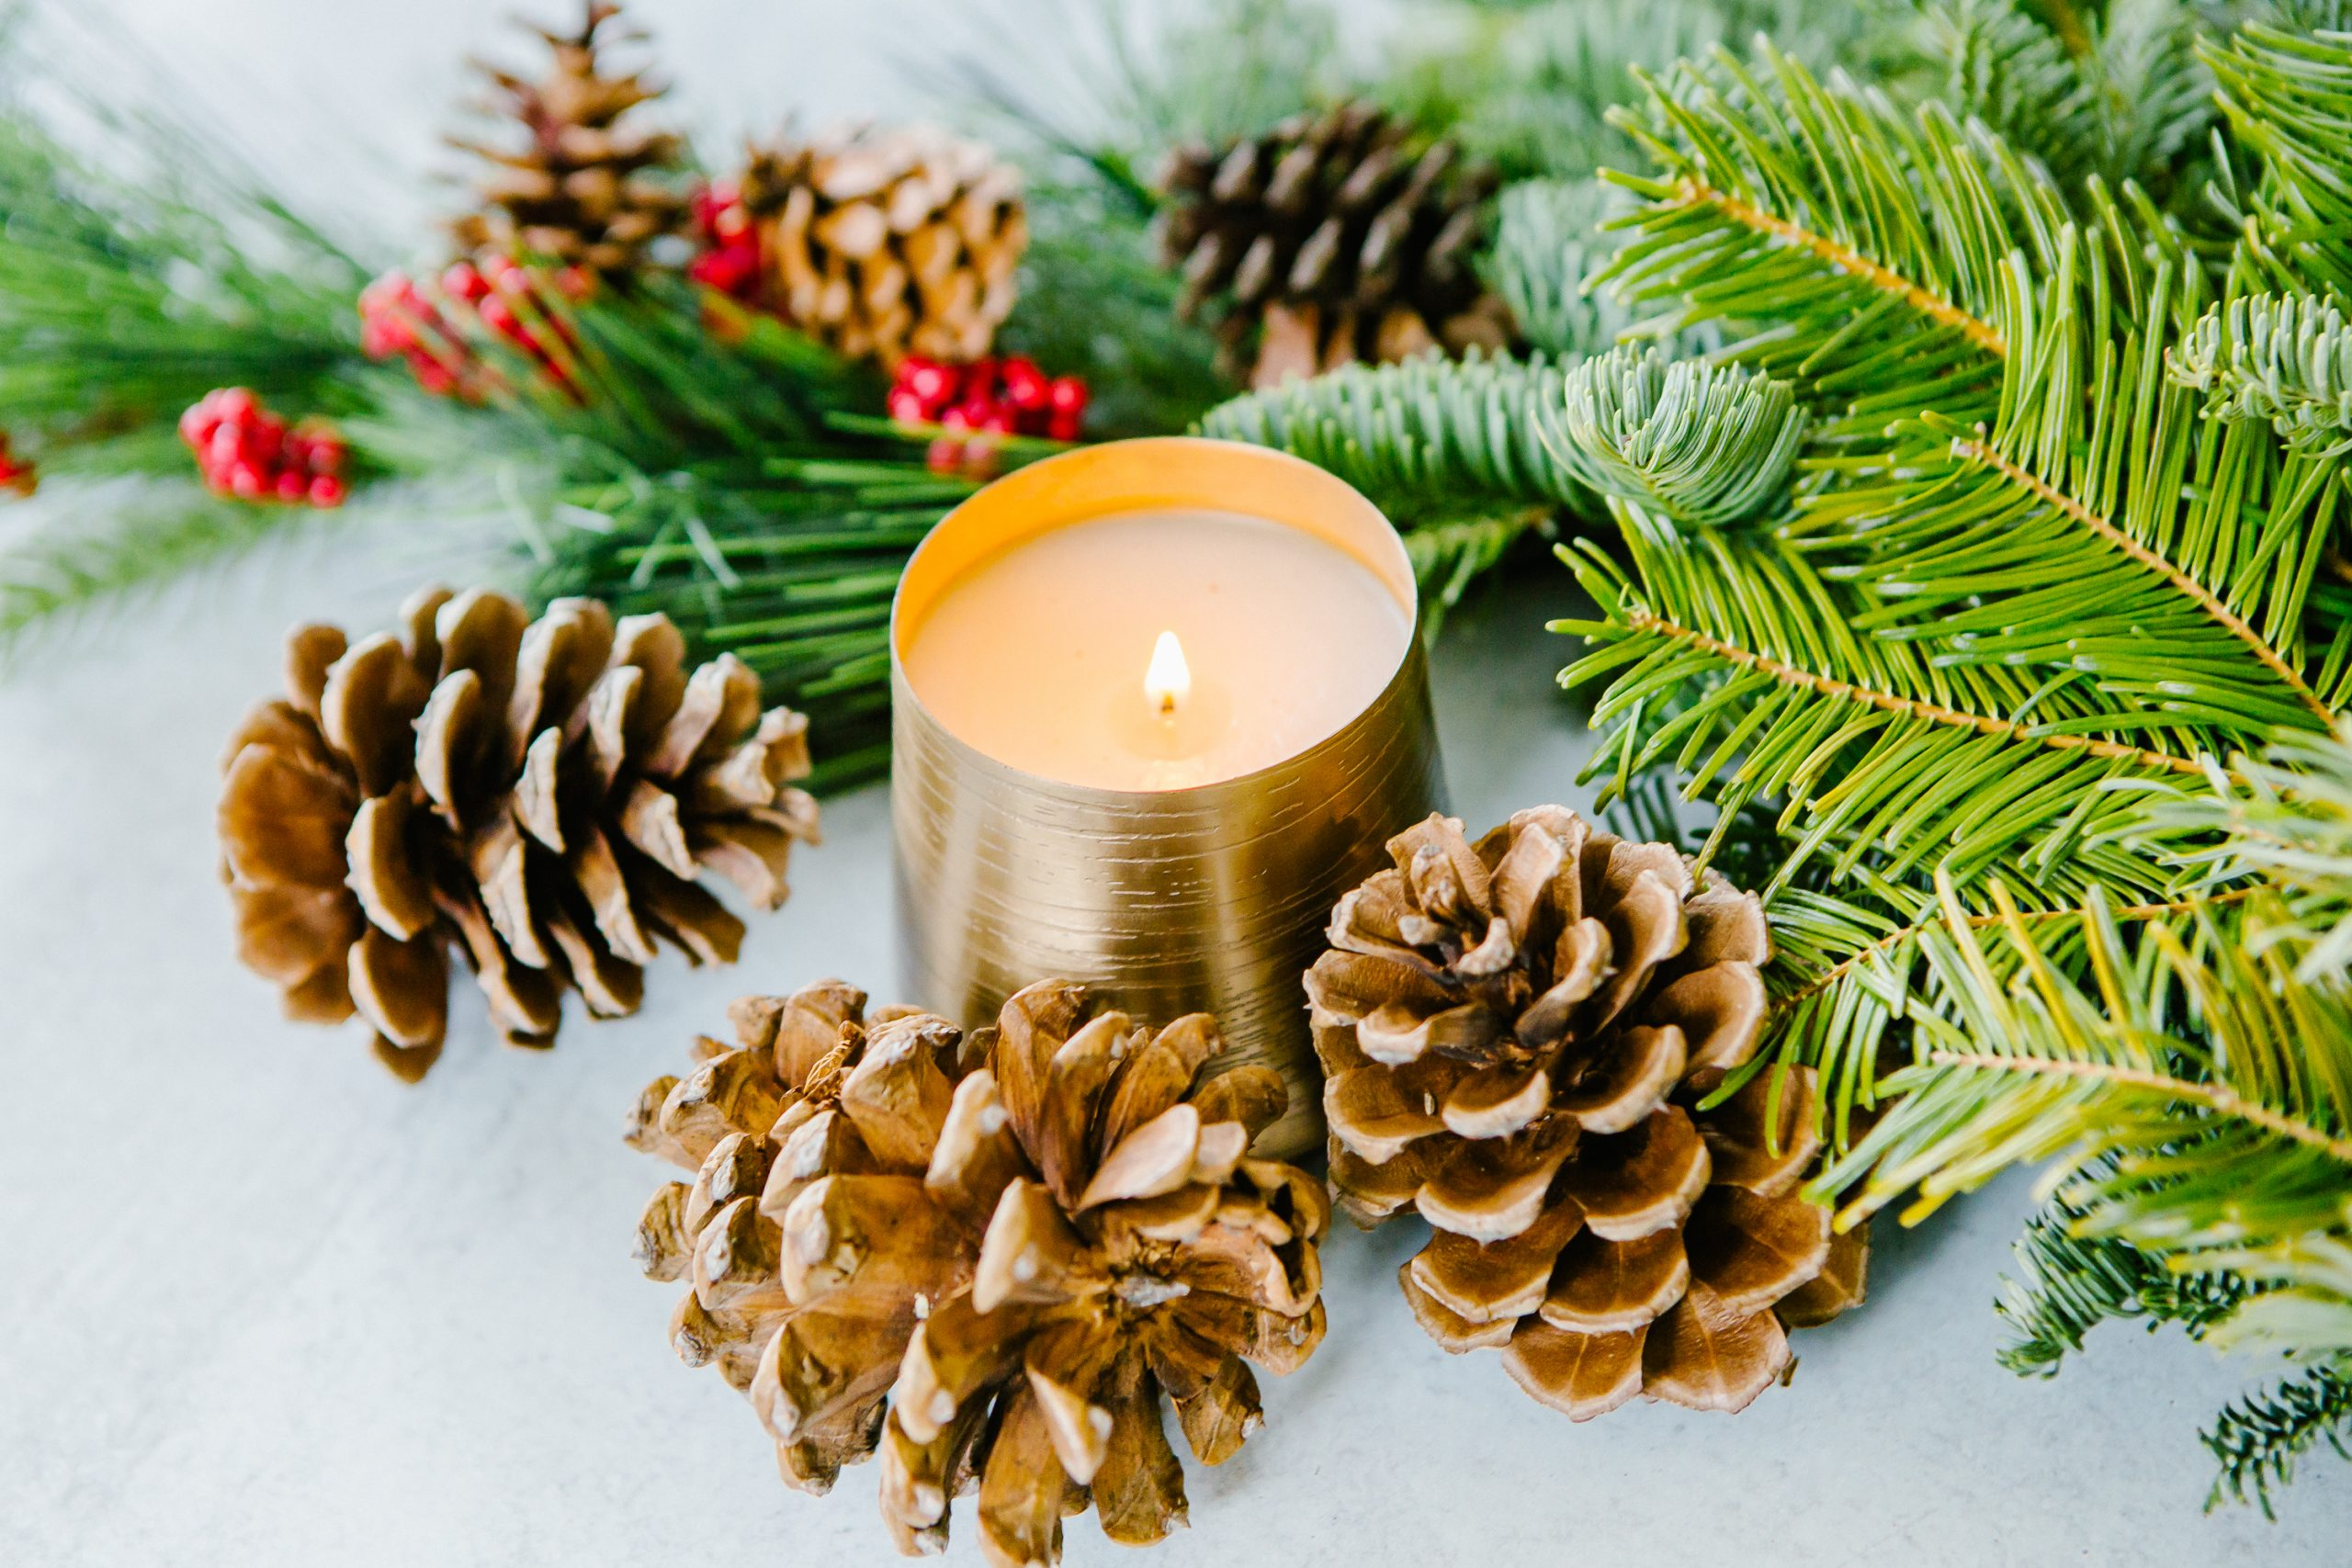 How Holiday Scents Can Make Your House Feel Warm & Cozy